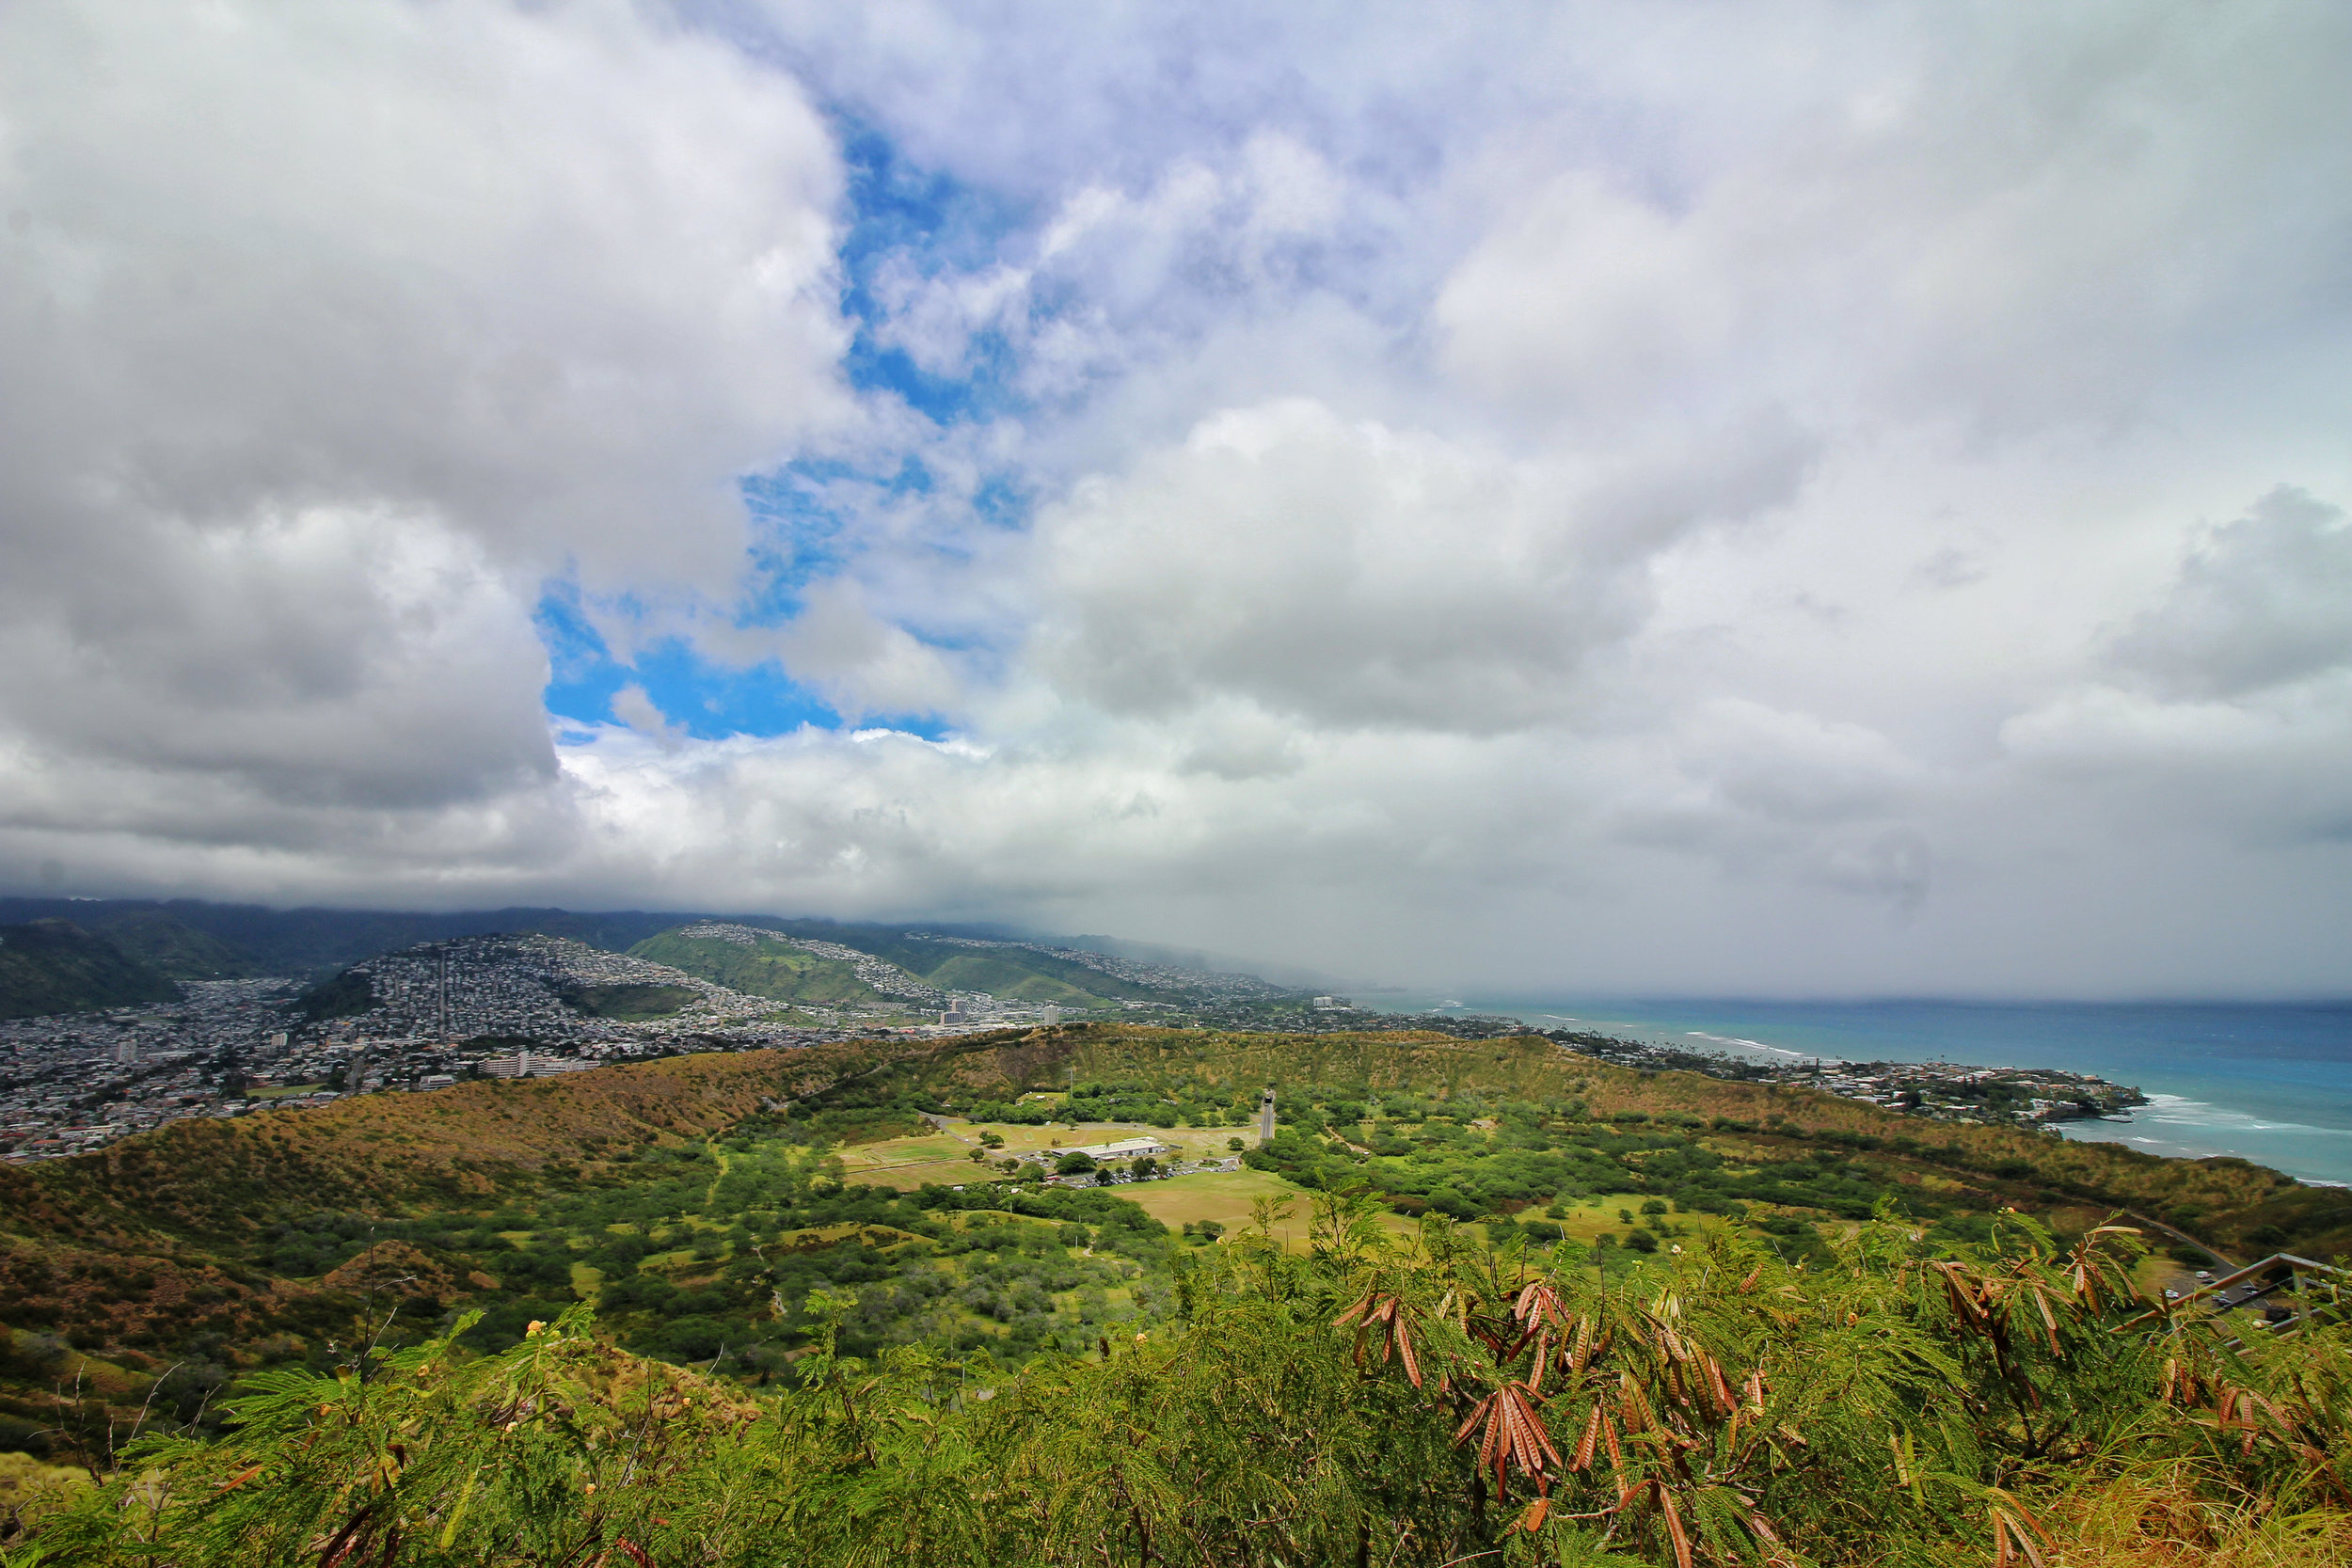 Top of Diamond Head Crater.